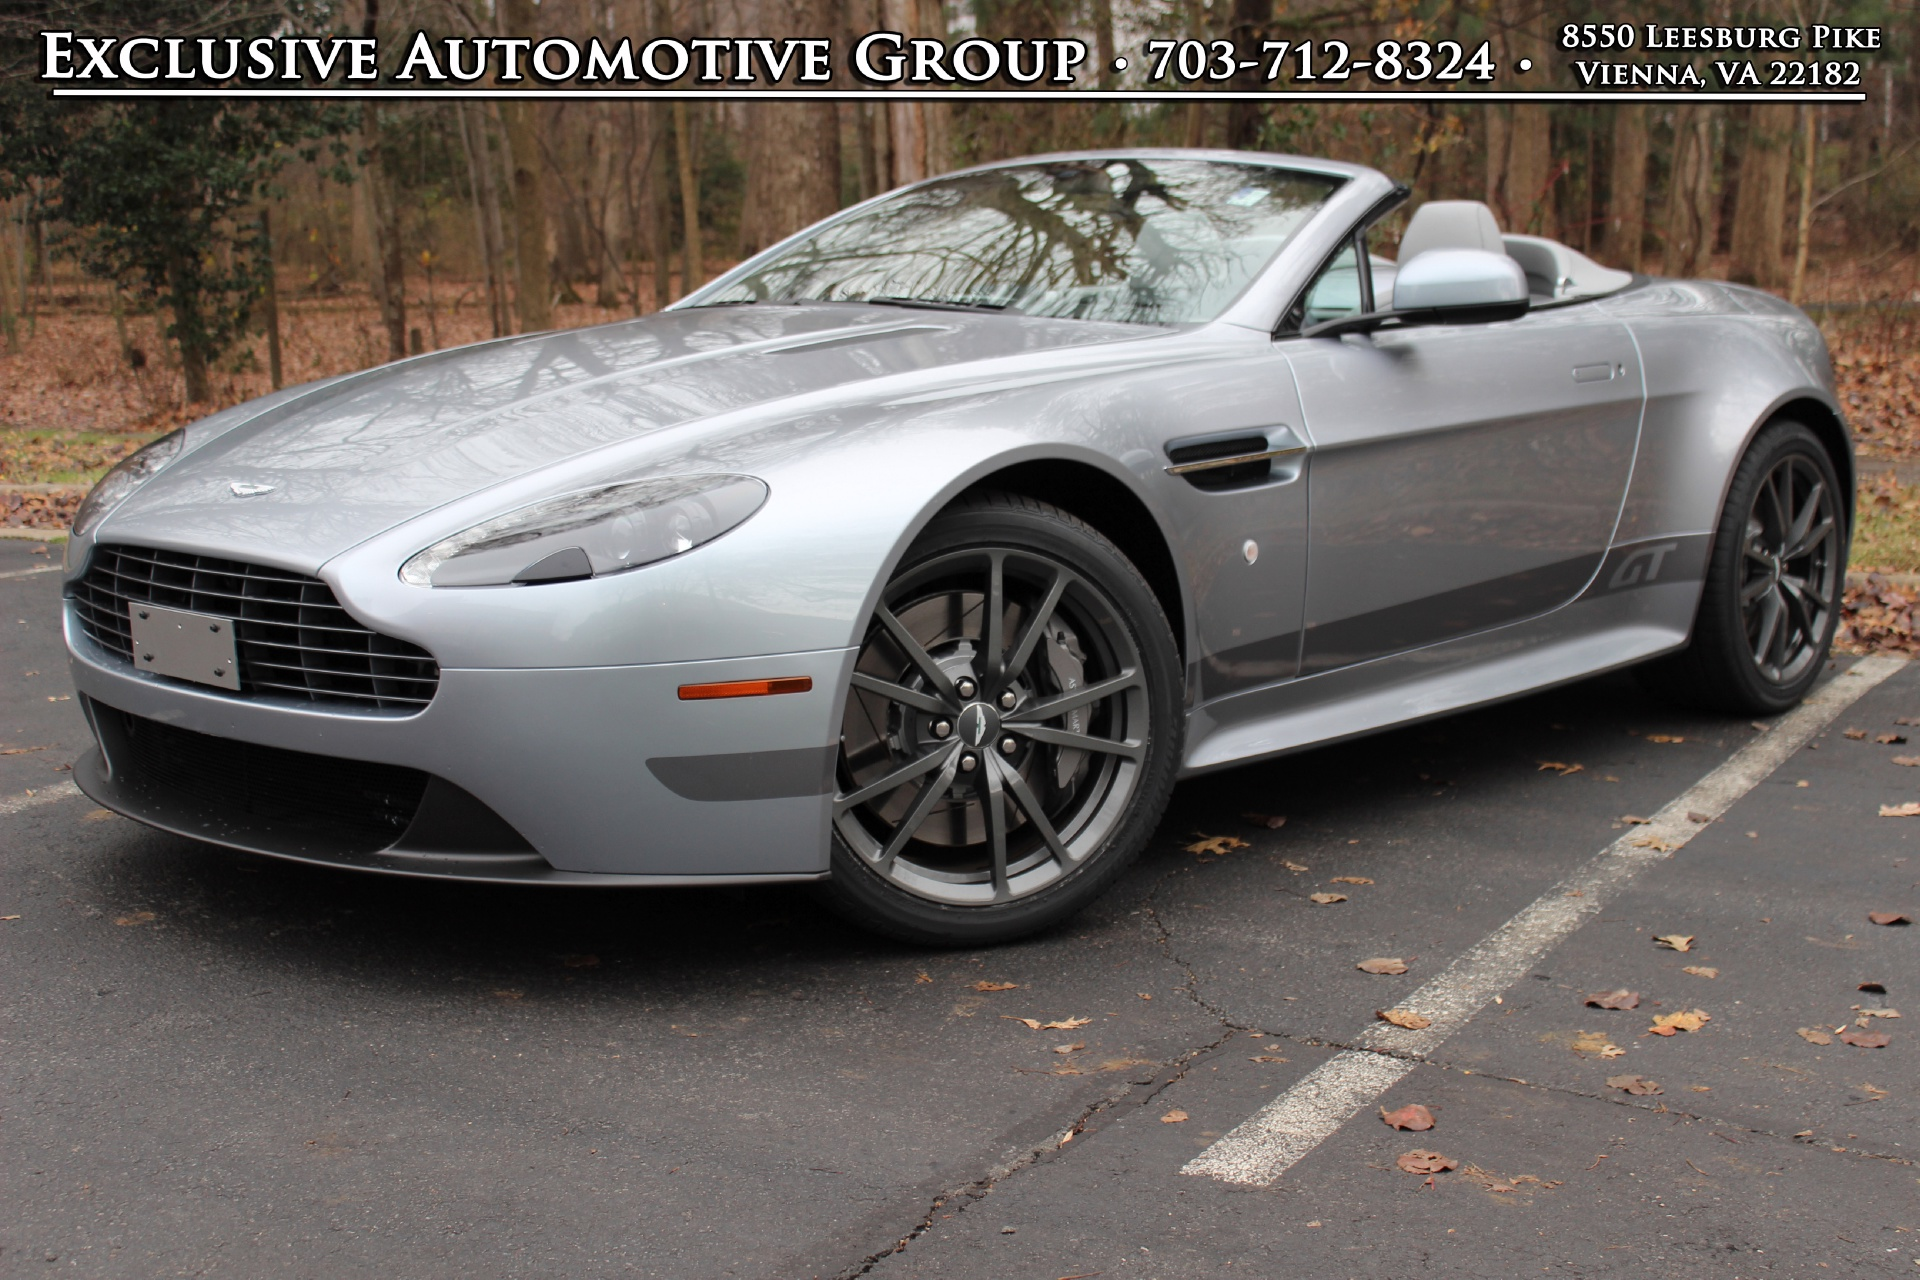 2015 Aston Martin V8 Vantage Gt Roadster Stock 5d19231 For Sale